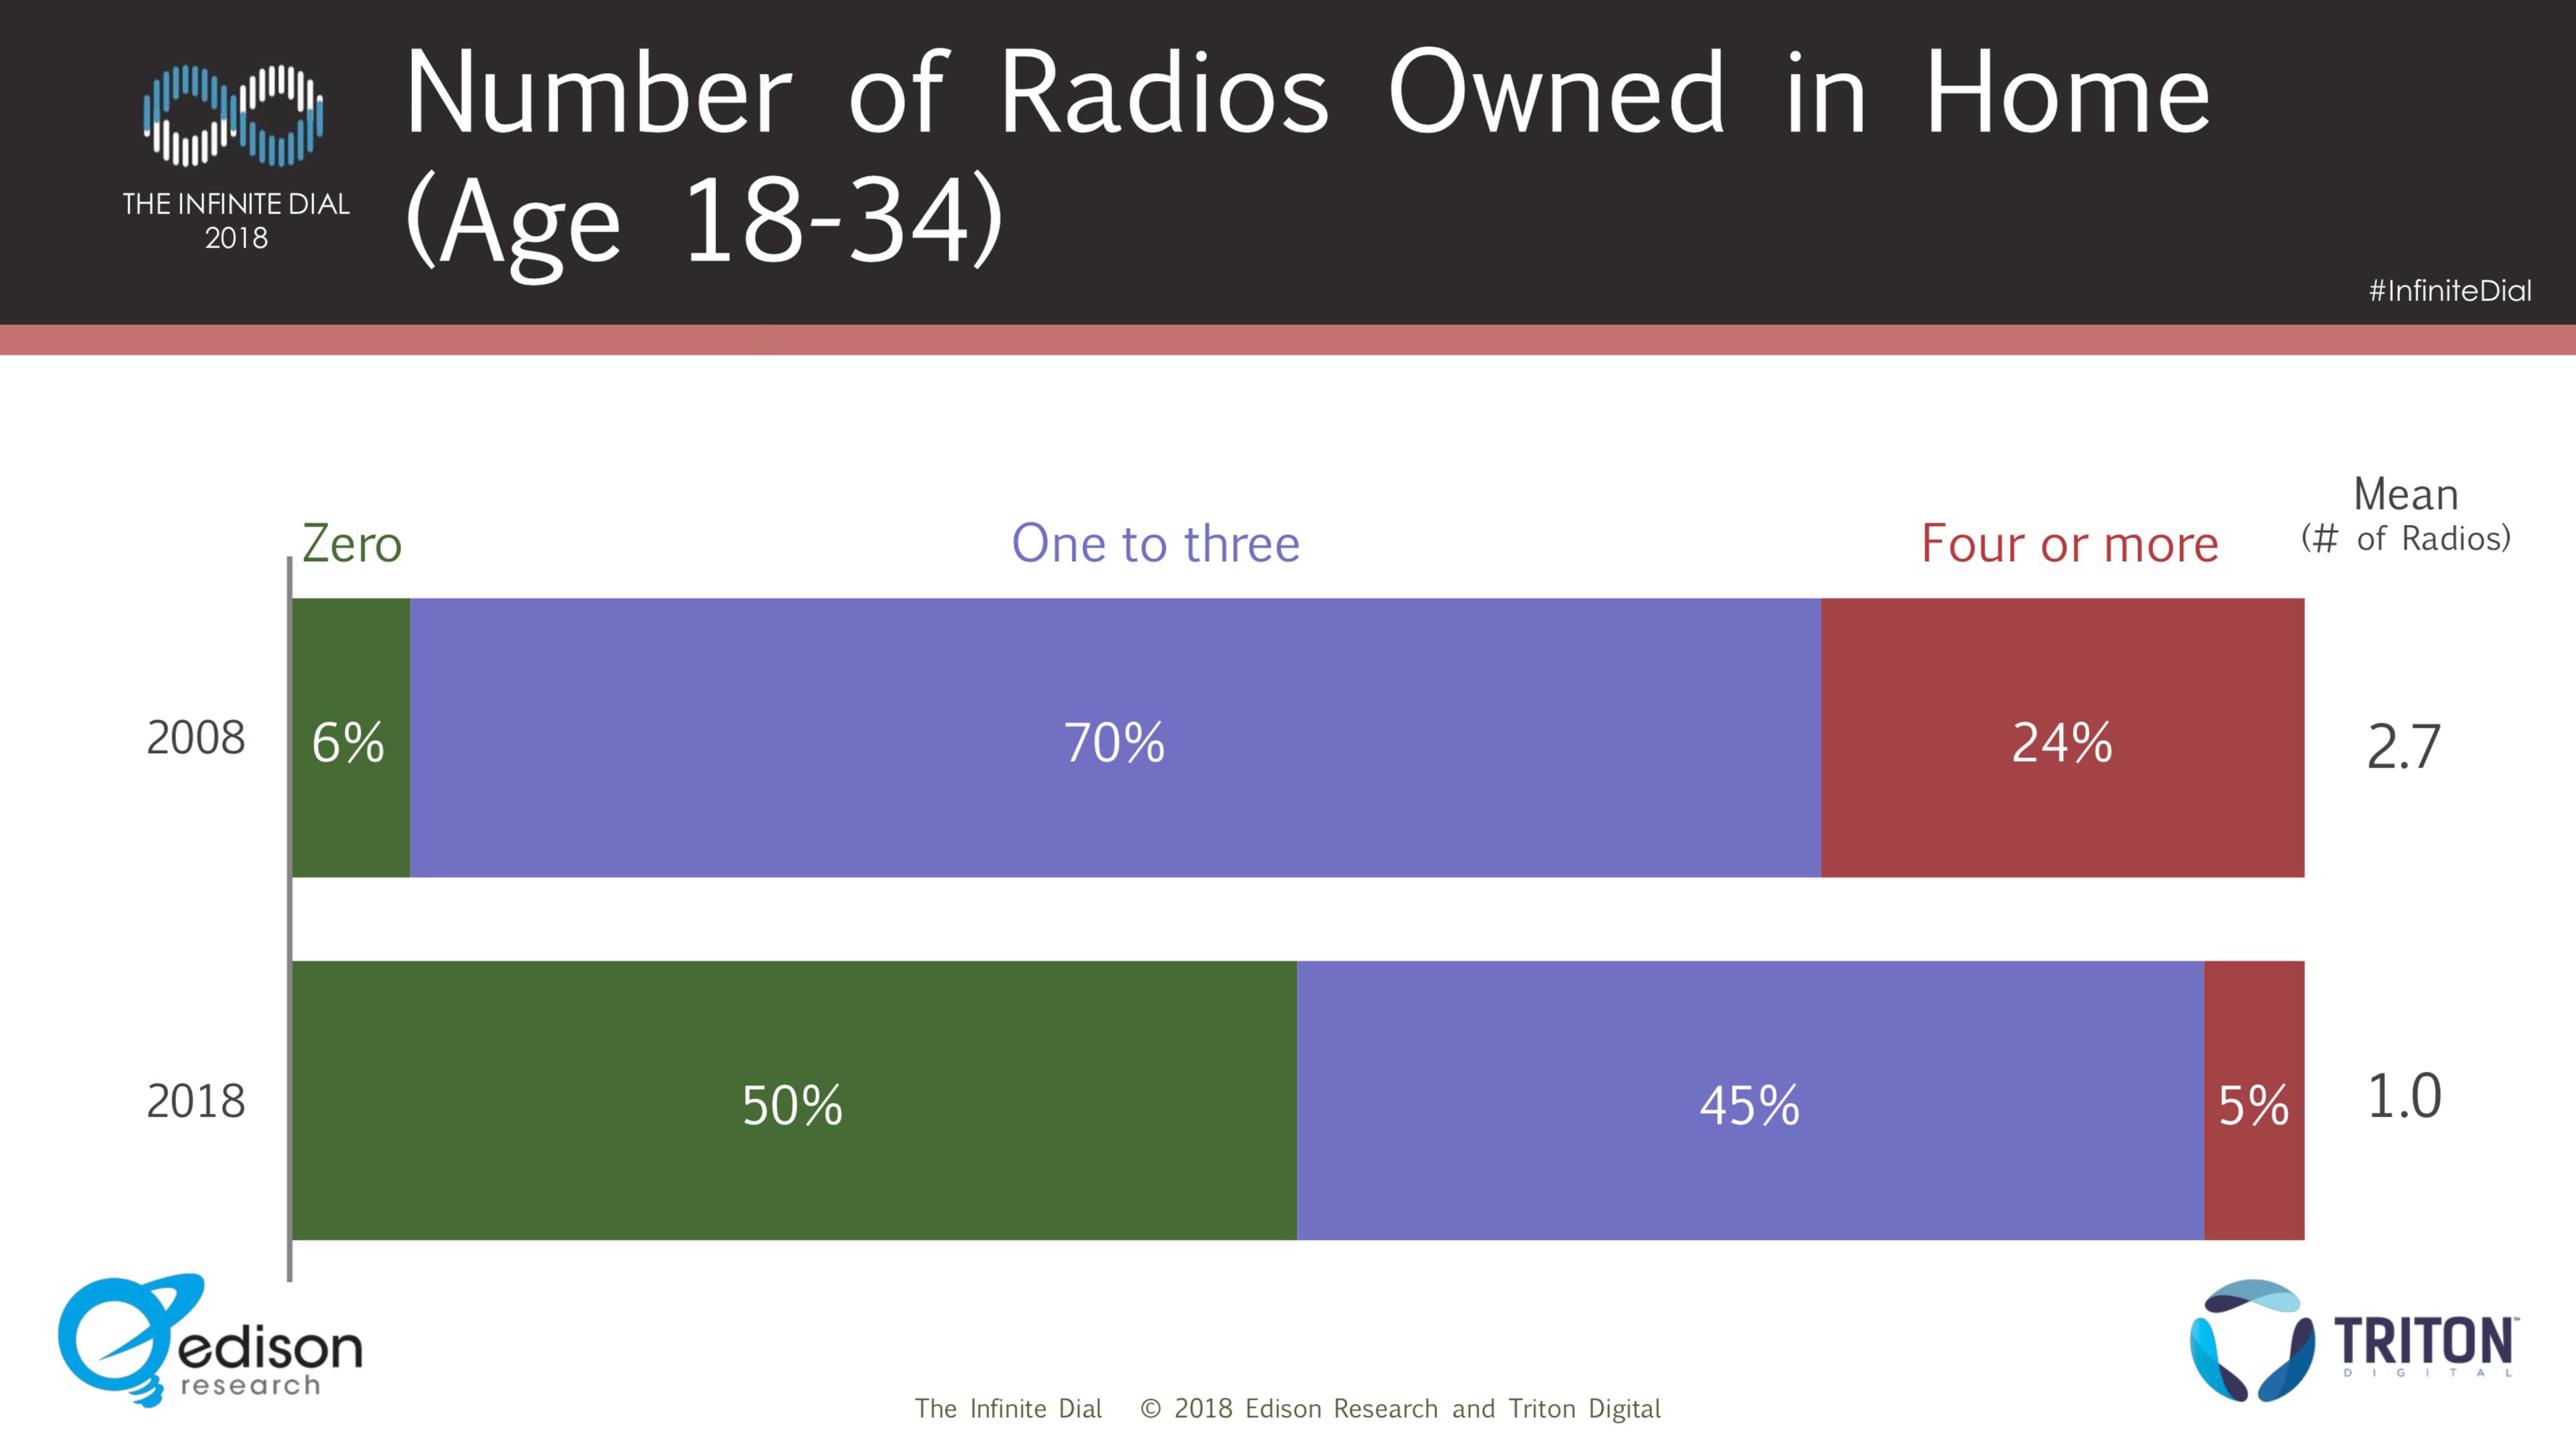 Number of radios owned in home, age 18-34 (InfiniteDial 2018)